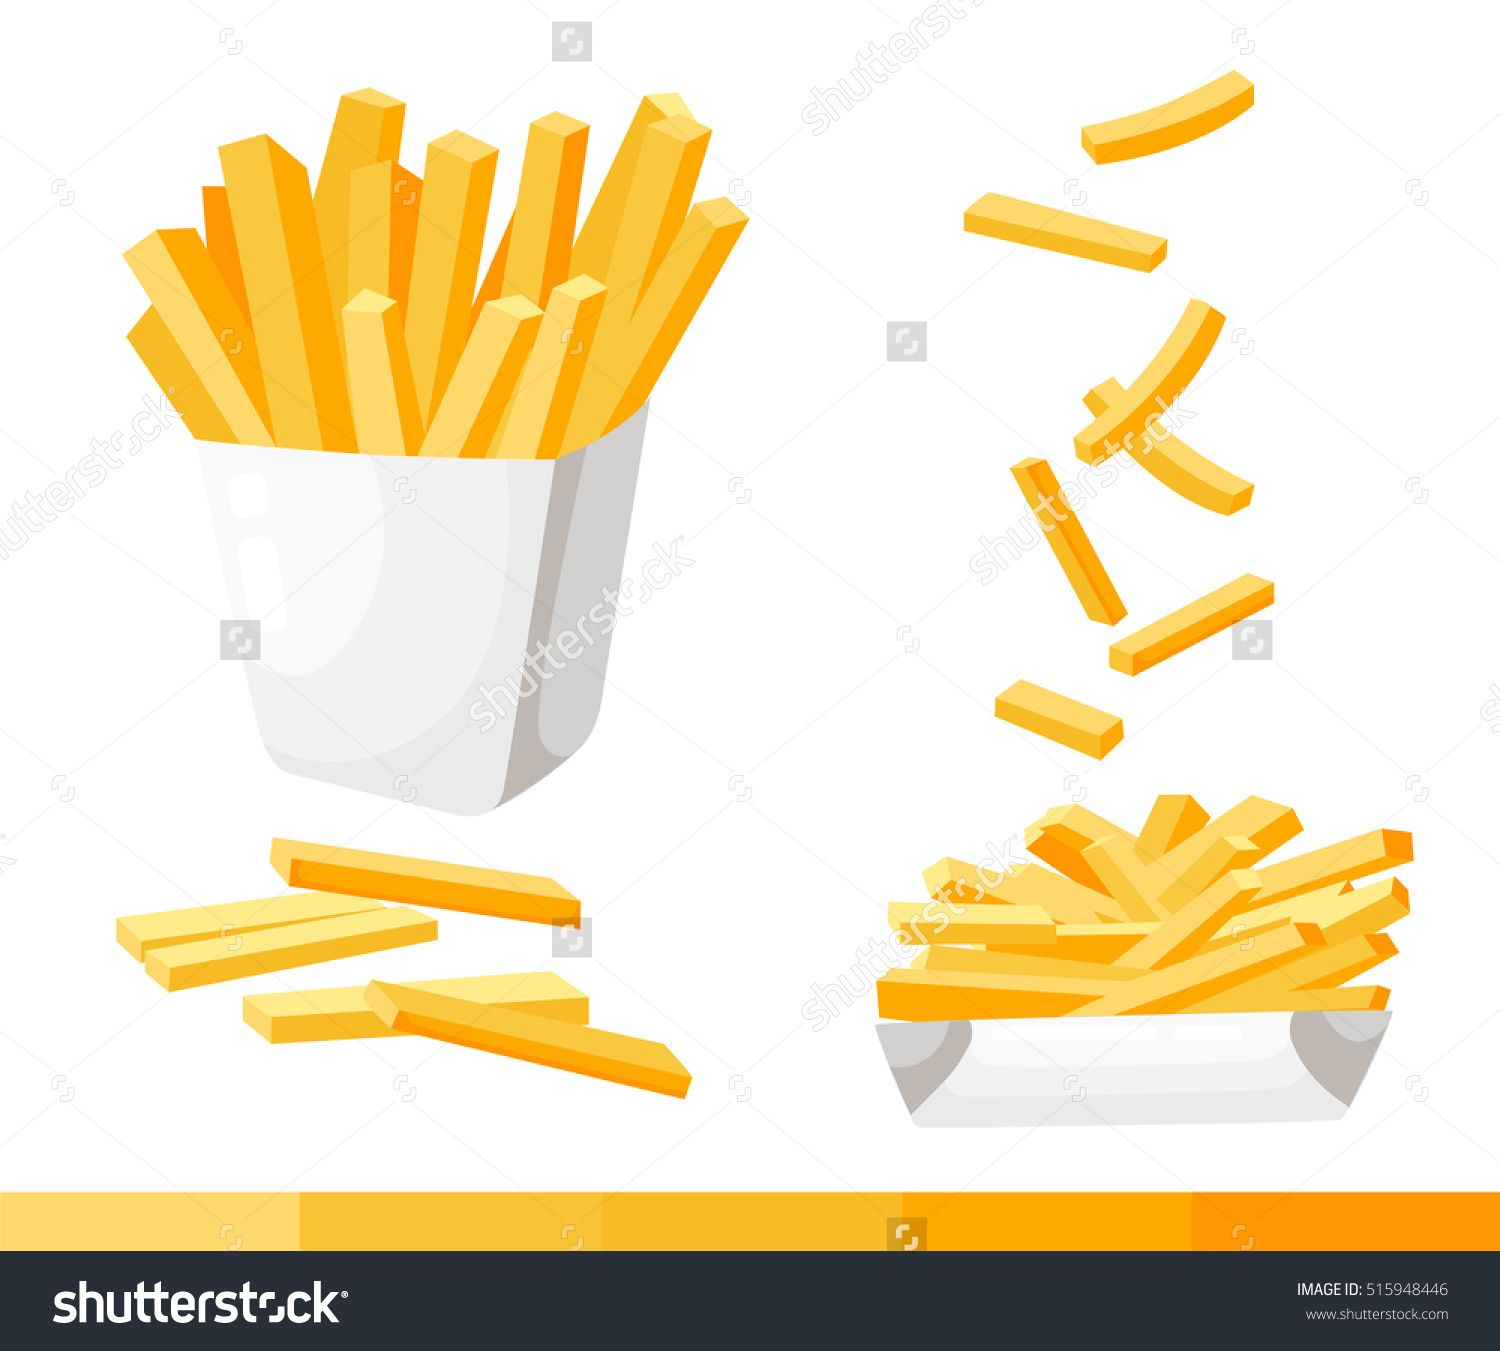 1500x1351 French Fries. Vector Illustration, Flat Design. French Fries In